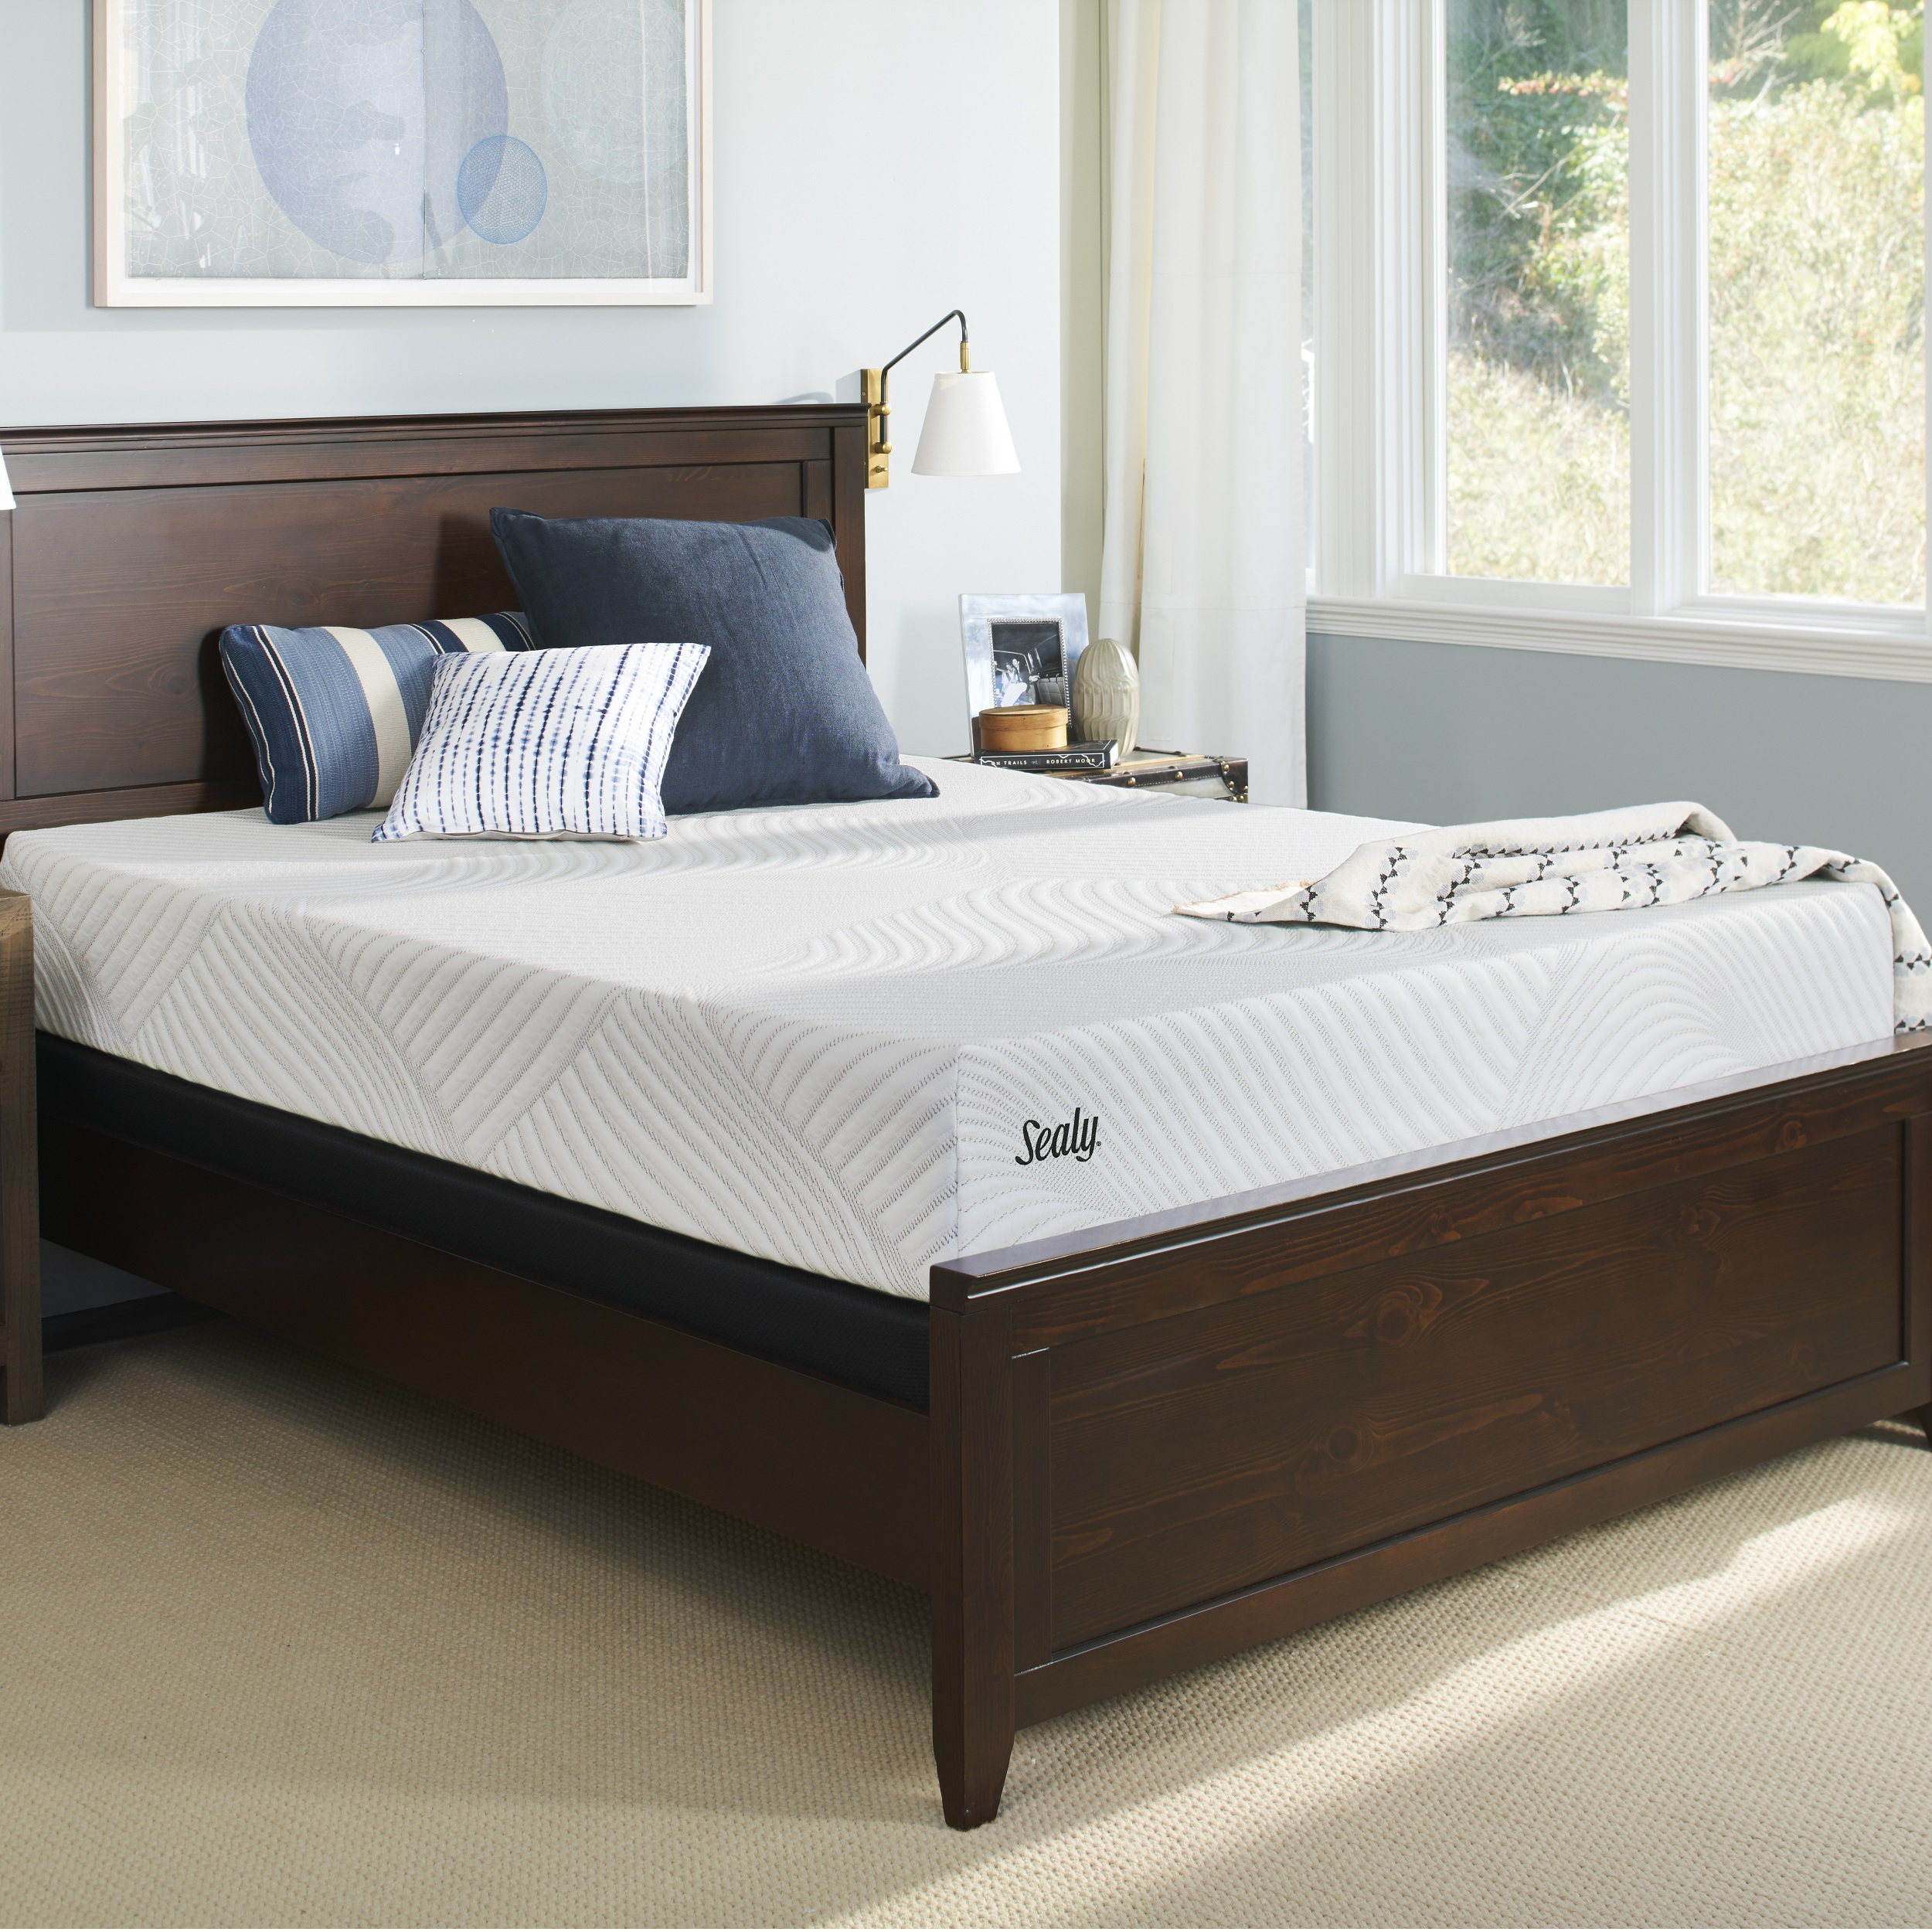 Sealy Conform Essentials 10.5-in. Cushion Firm Mattress and Low Foundation Set by Sealy Mattress Manufacturing Company LLC